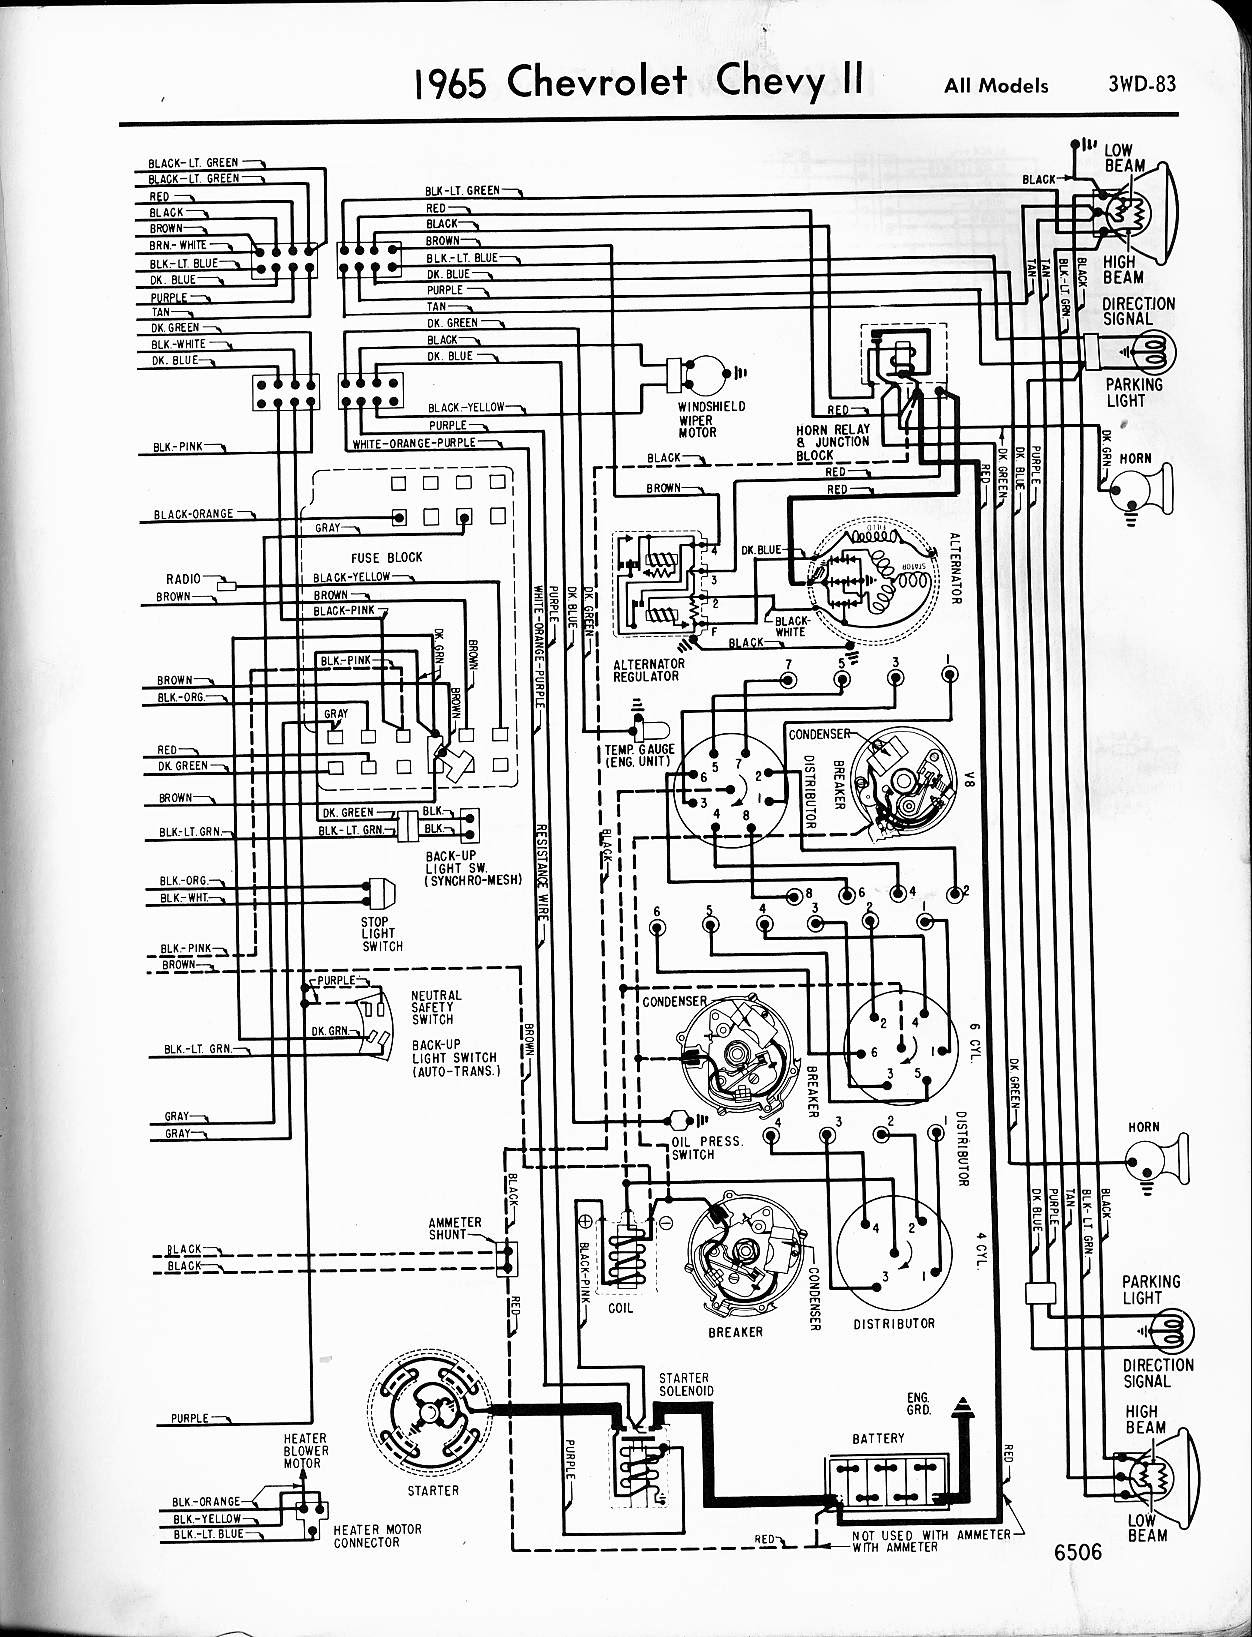 1973 Chevy Nova Fuse Box Diagram S2000 Fuse Box Relocation Rc85wirings Losdol2 Jeanjaures37 Fr